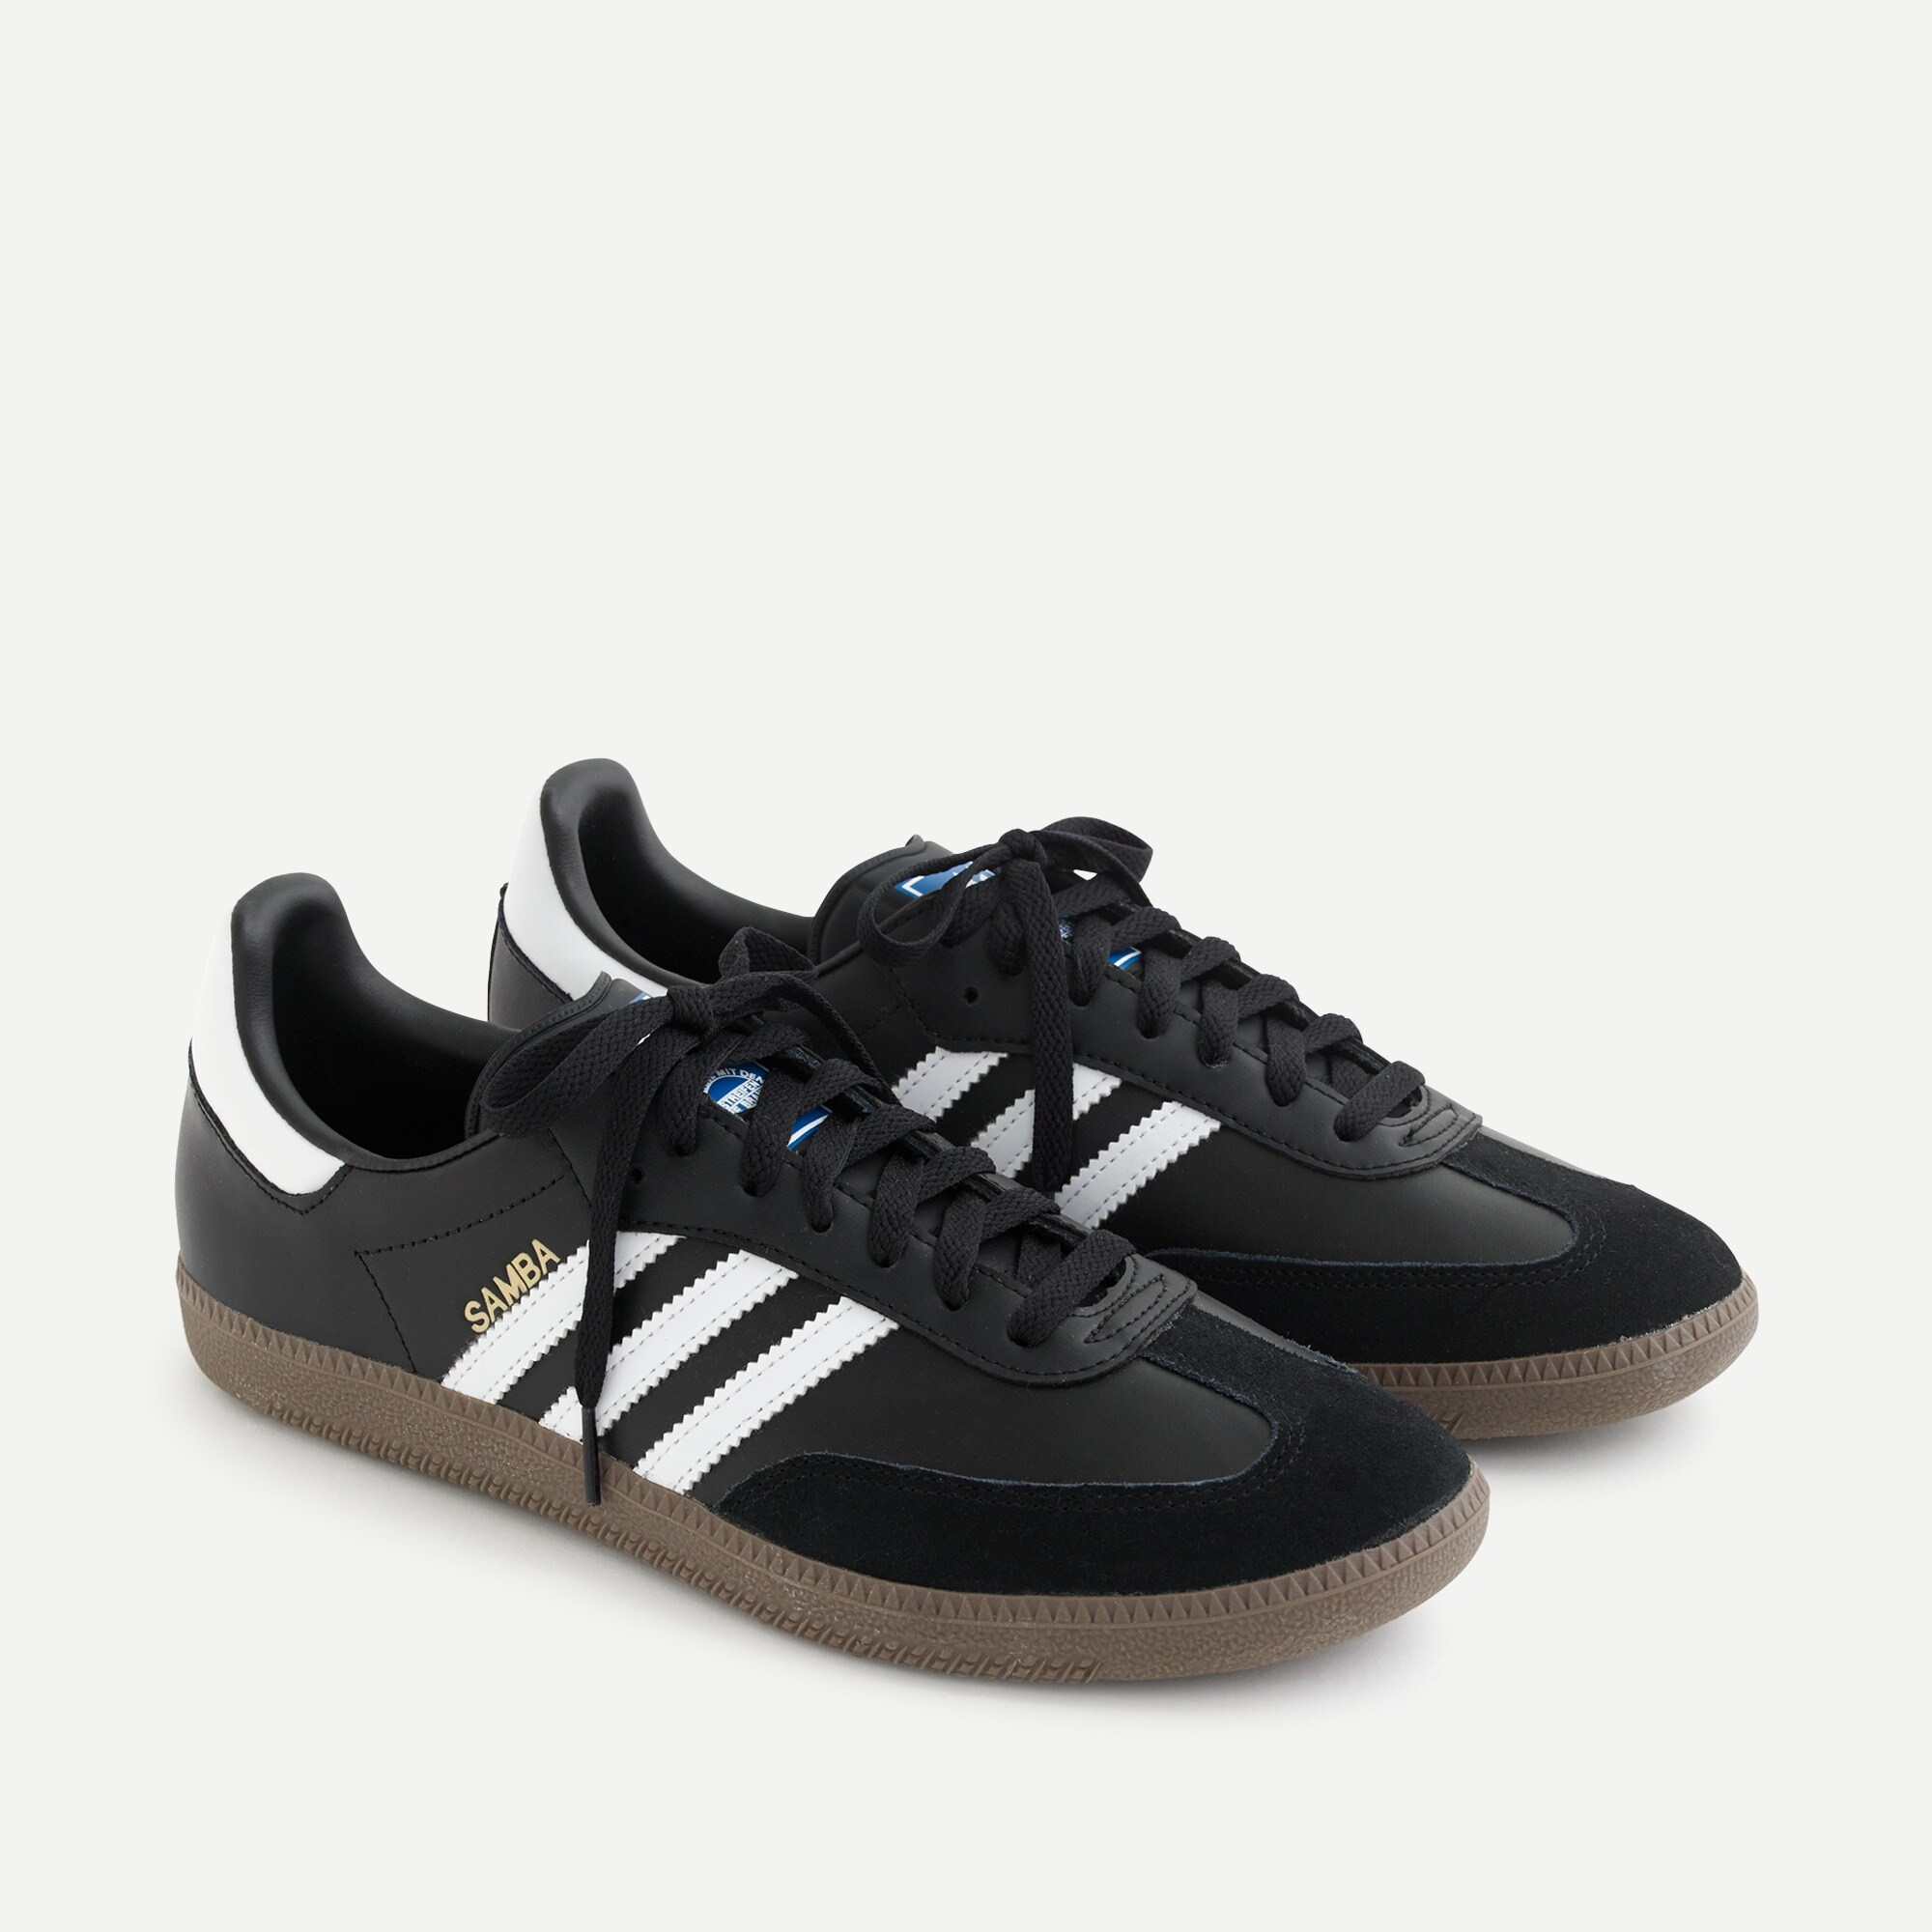 Adidas® Samba® sneakers men j.crew in good company c